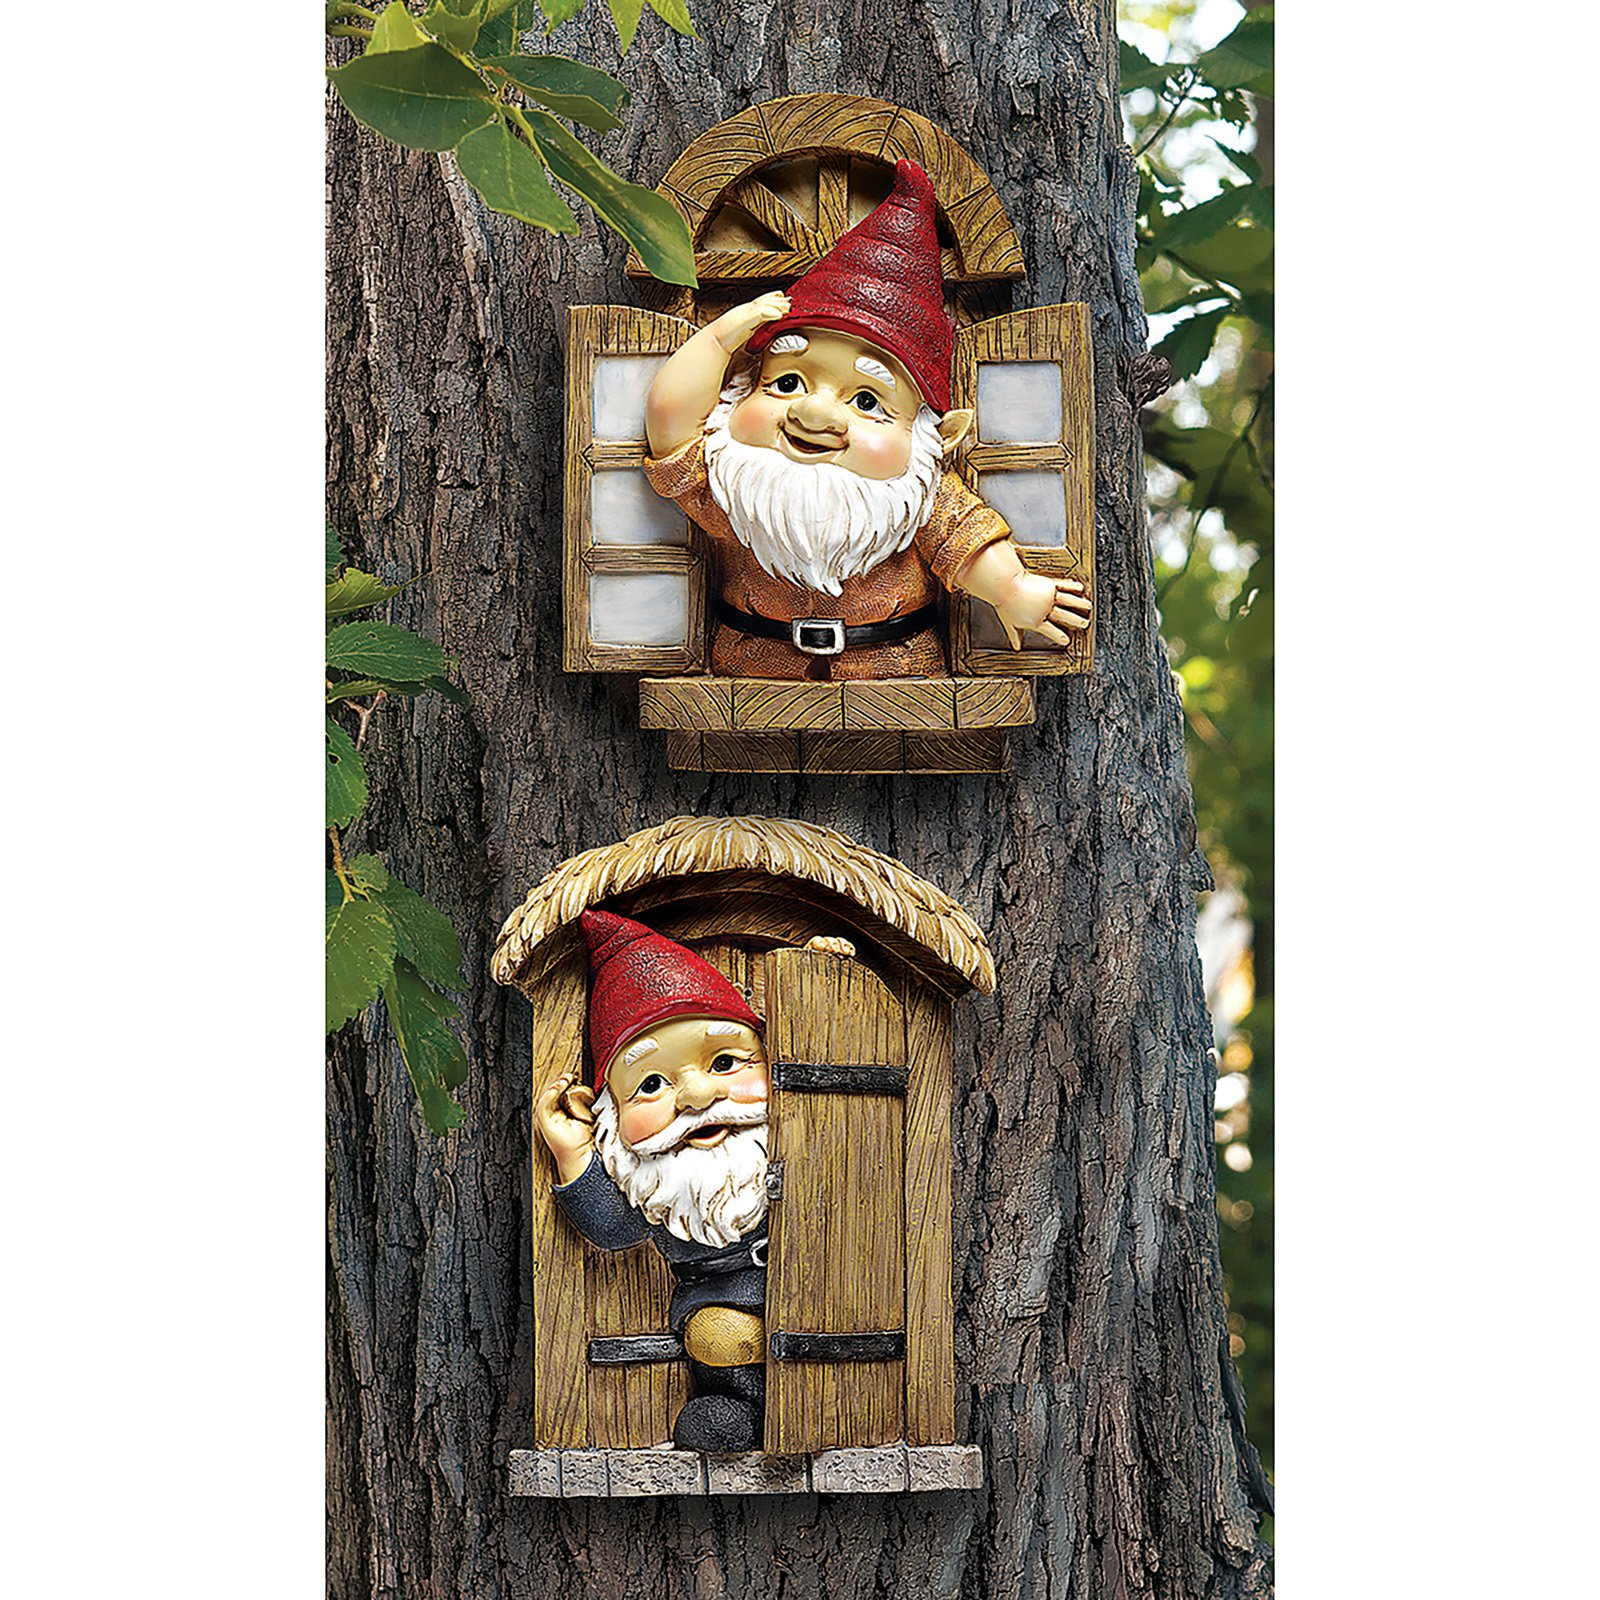 Design Toscano The Knothole Gnomes Garden Welcome Tree Sculpture Set